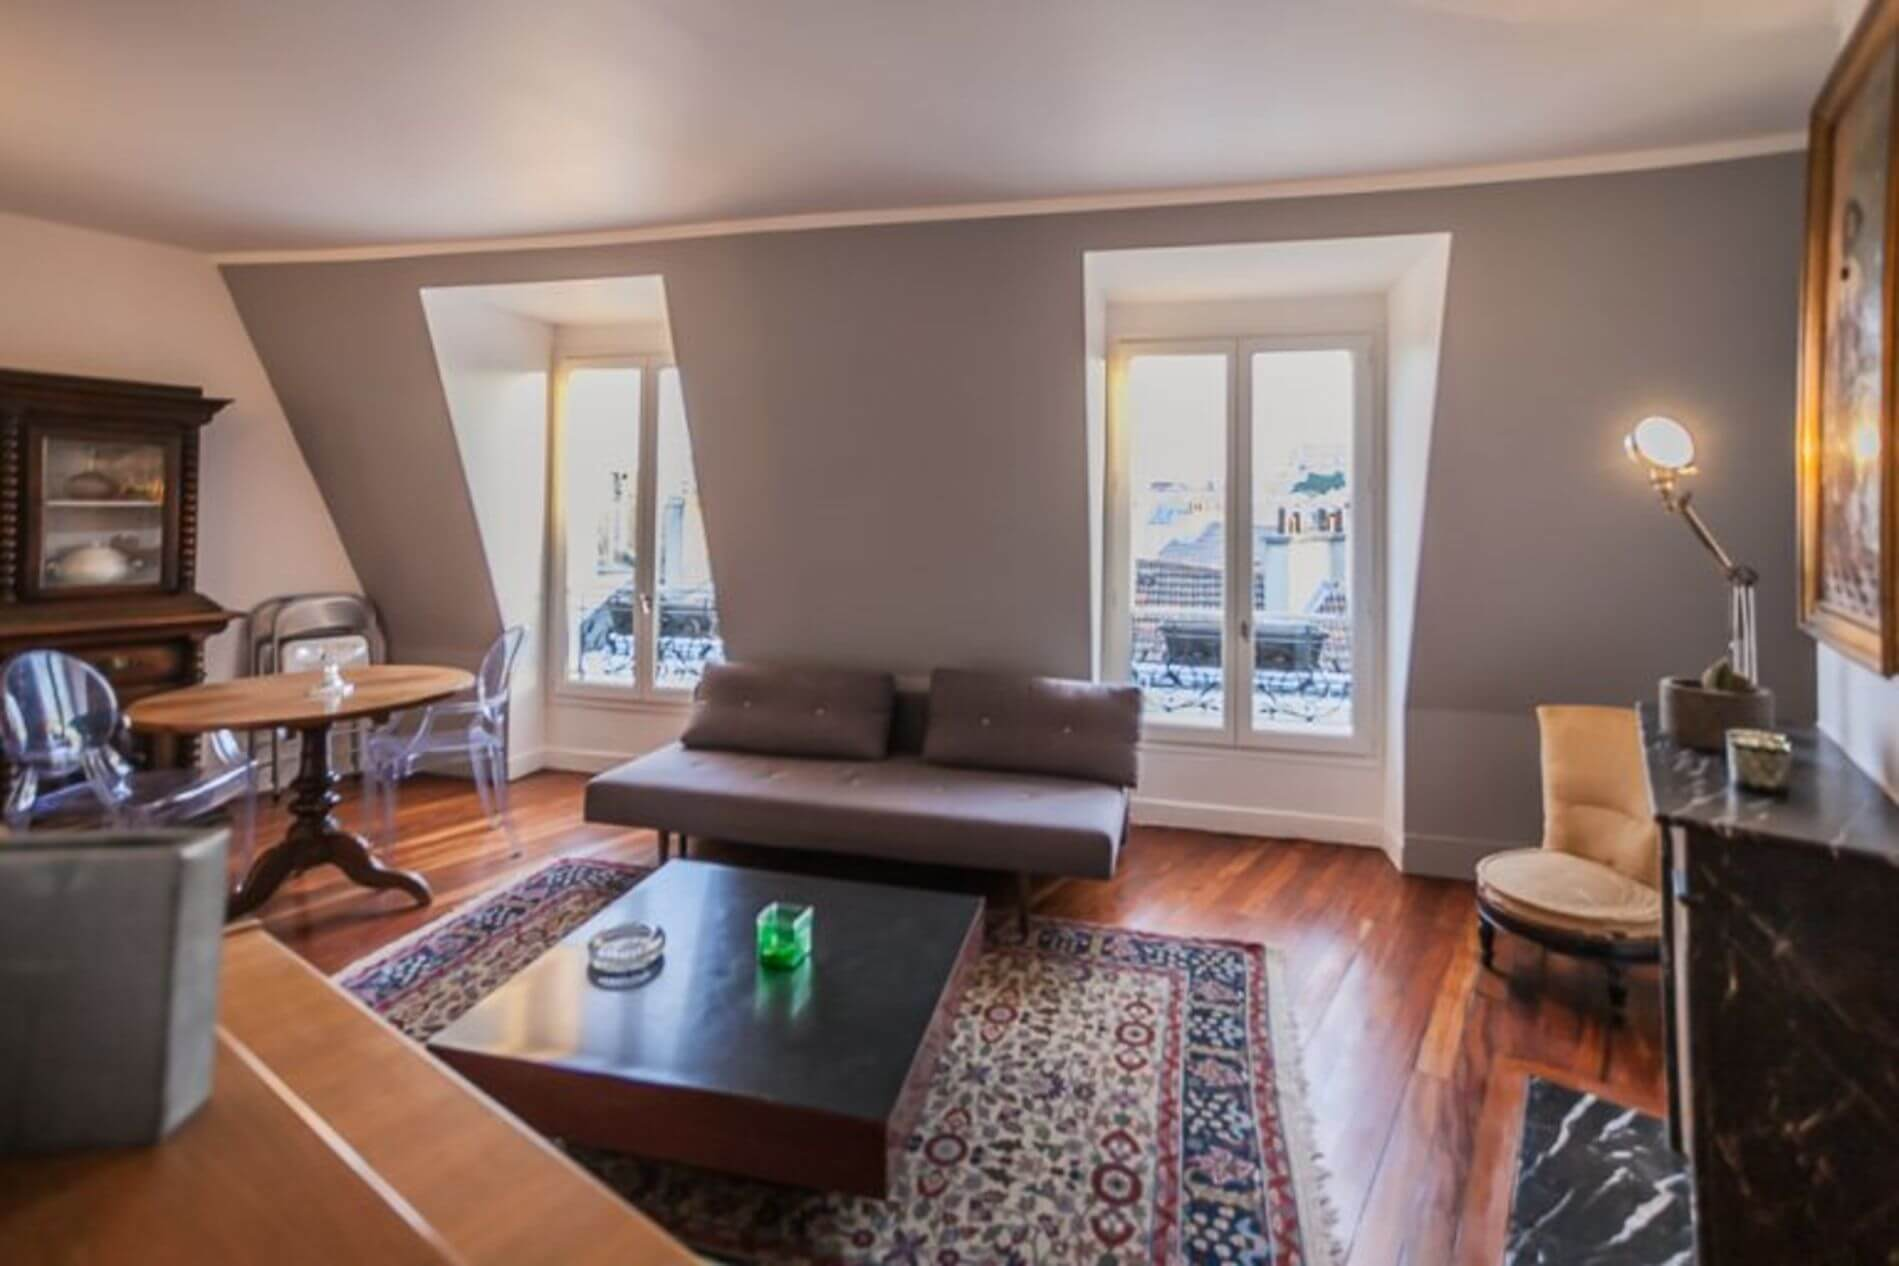 Luxurious serviced apartment in Paris with lots of space perfect for long stays